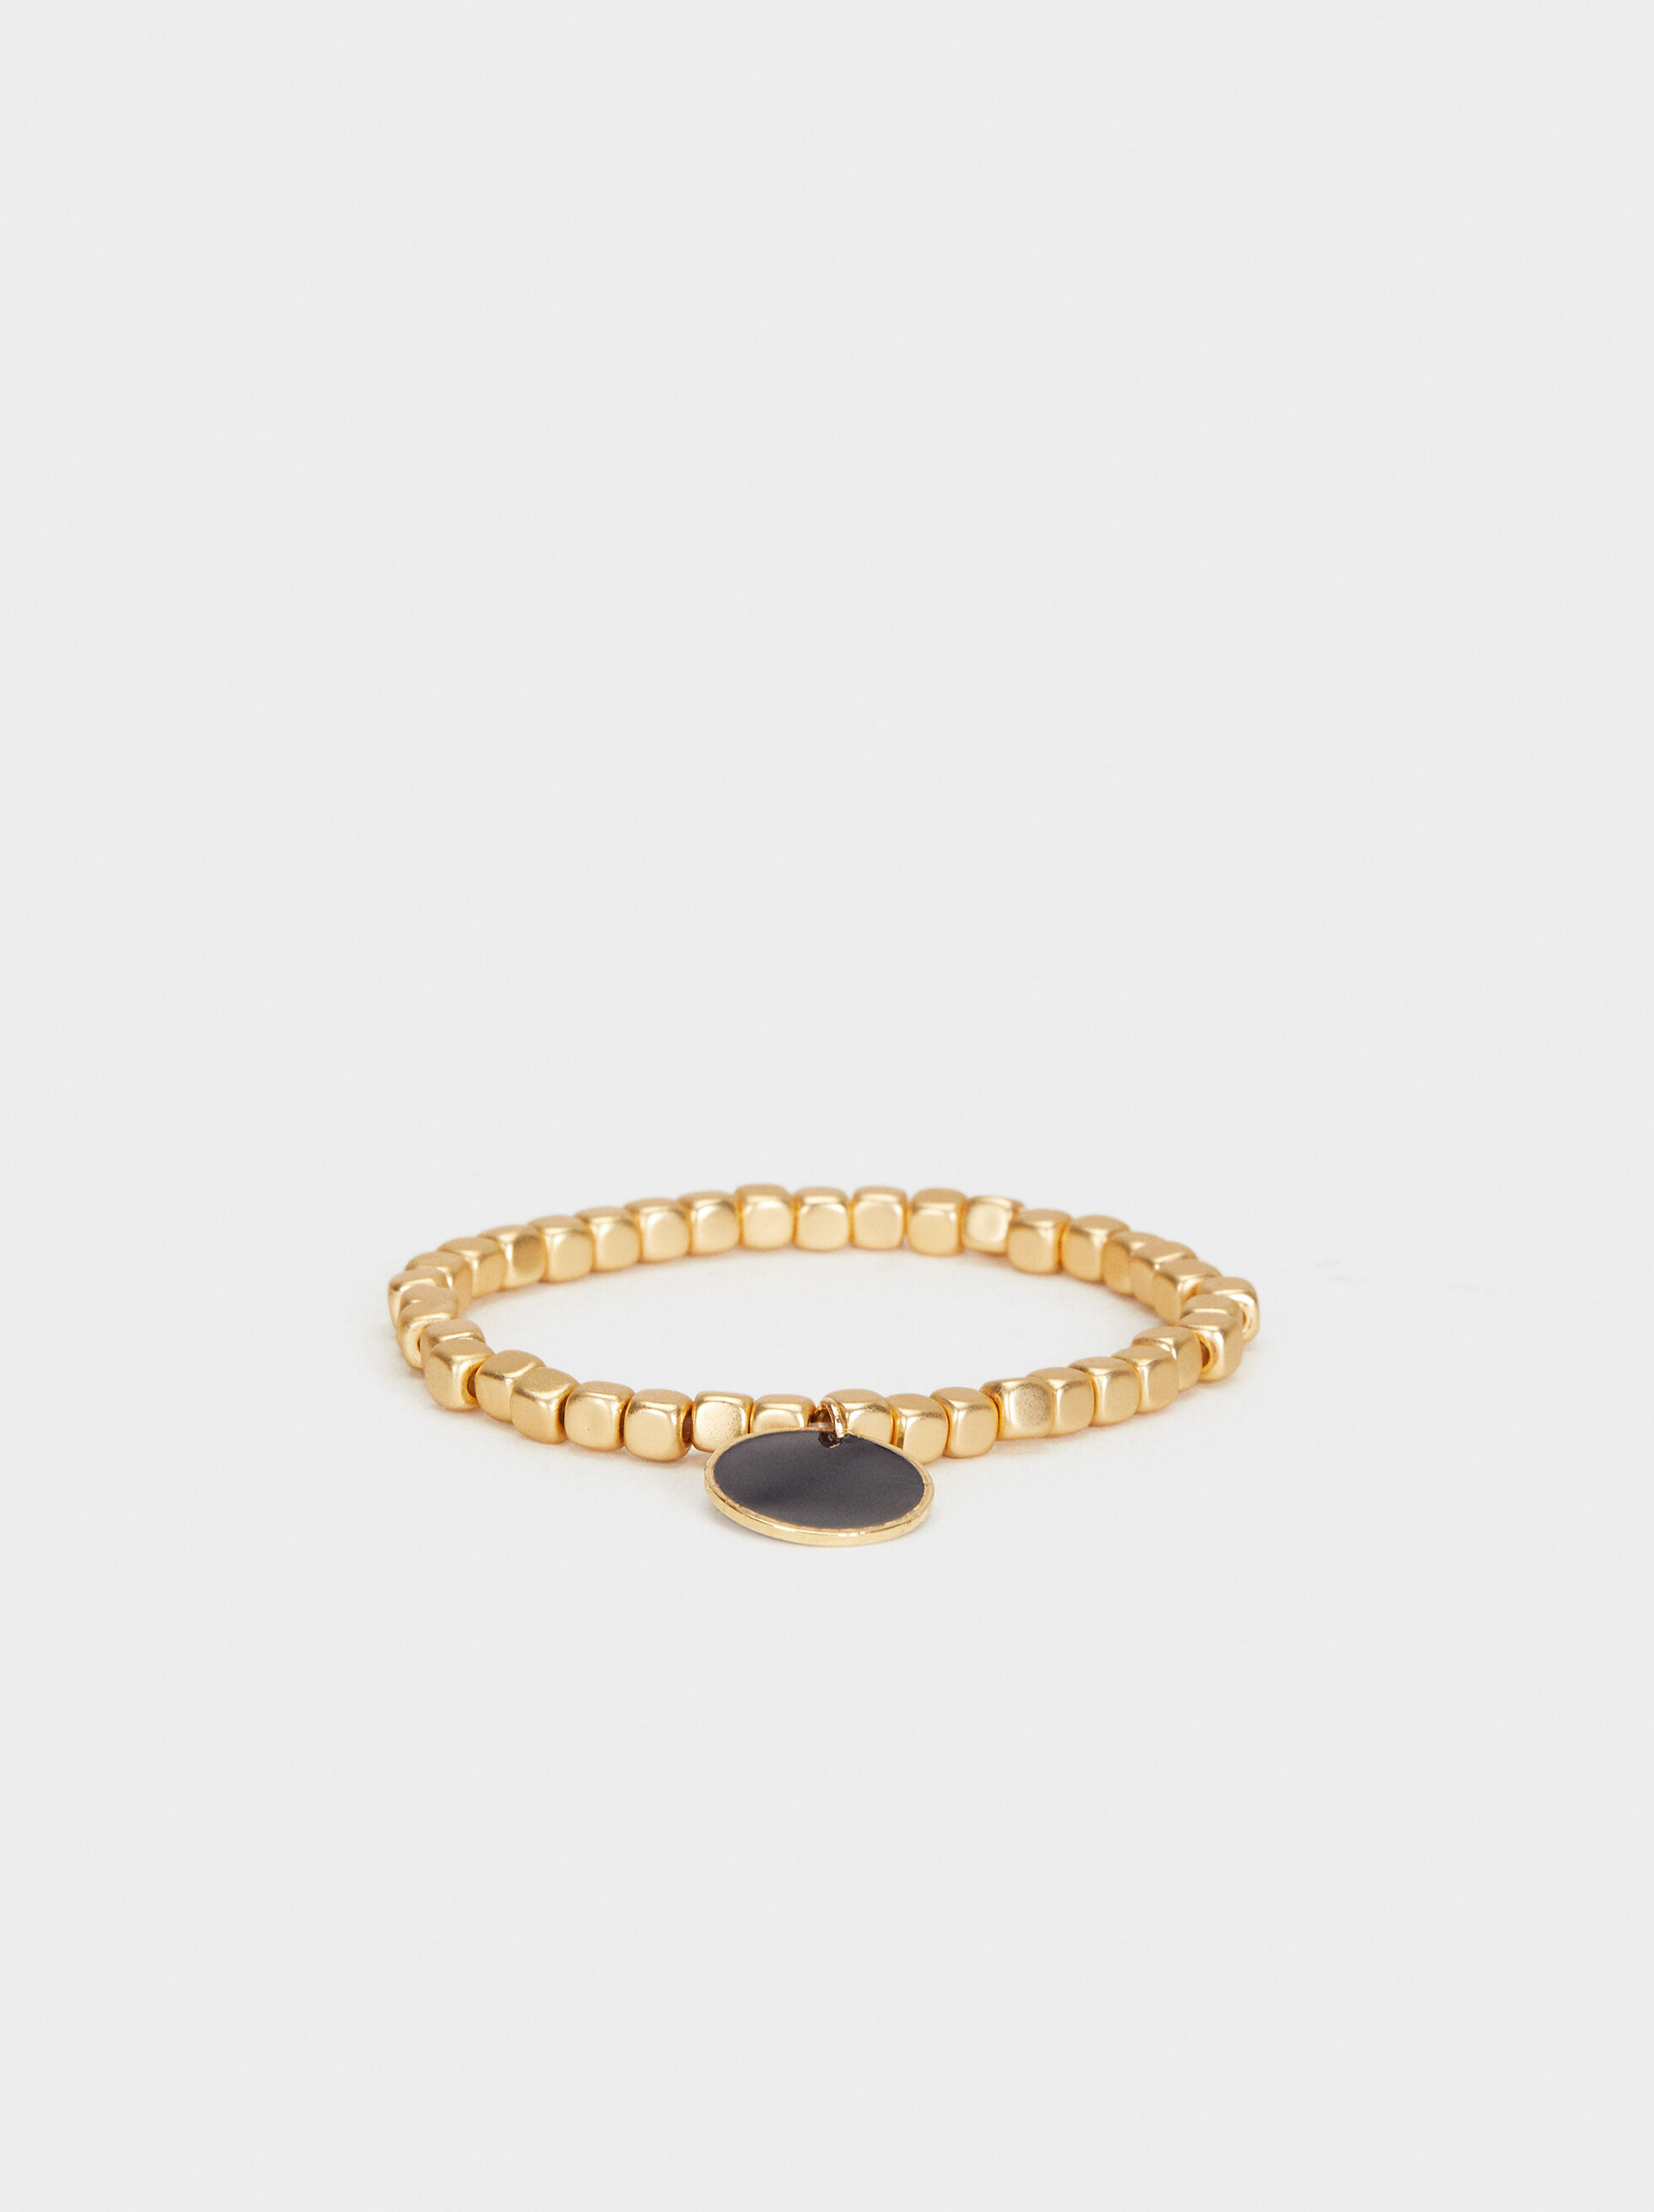 Bubbles Elastic Bracelet, Golden, hi-res